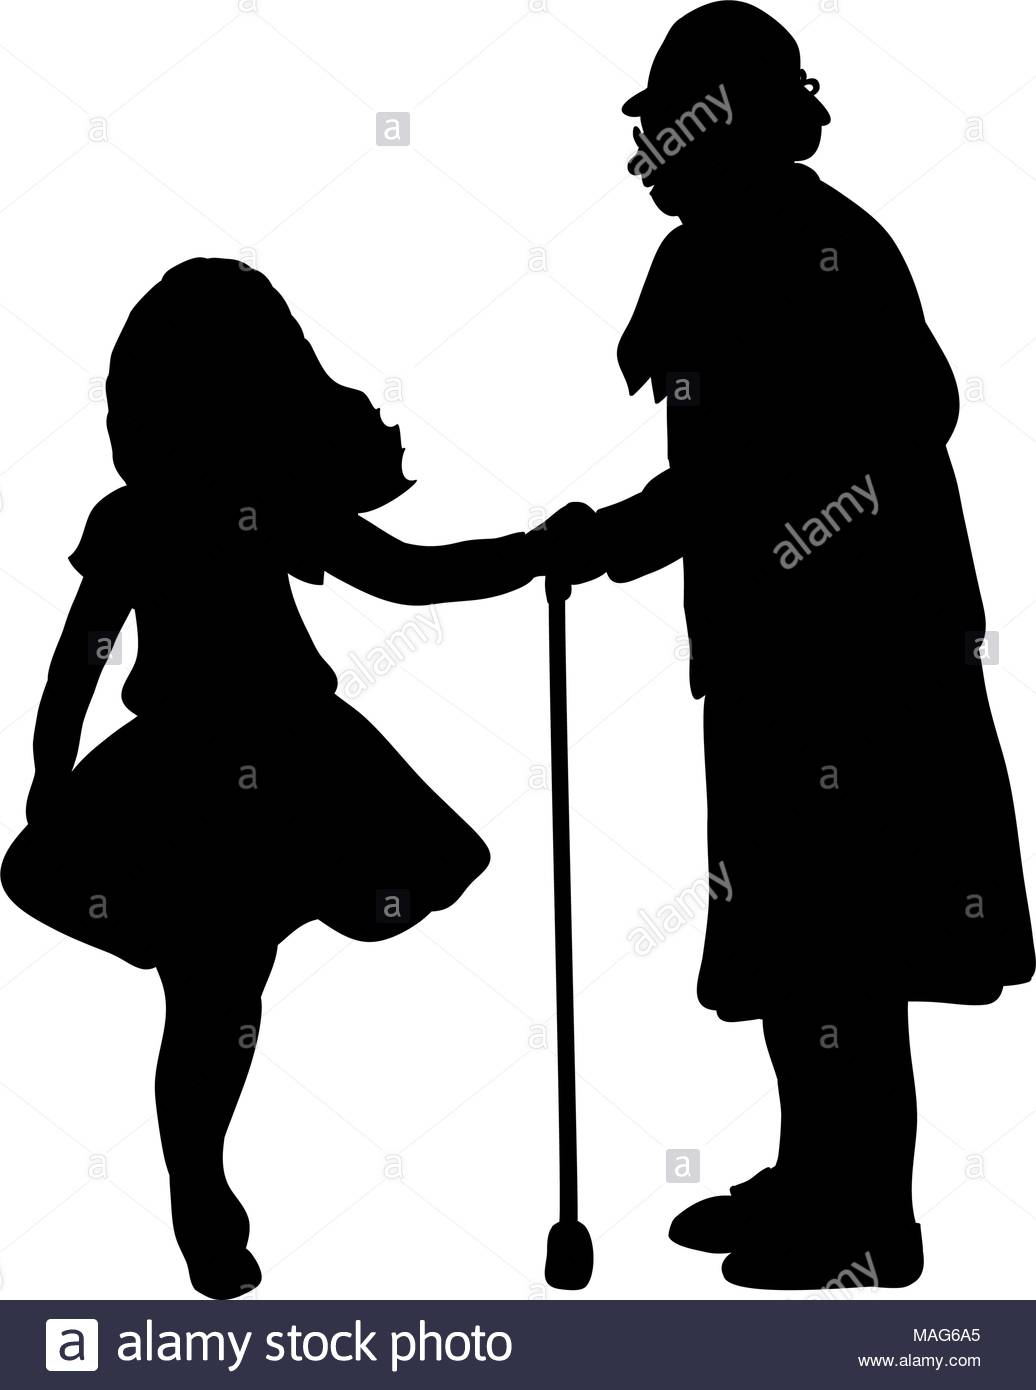 1036x1390 Grandma And Child Stock Vector Images